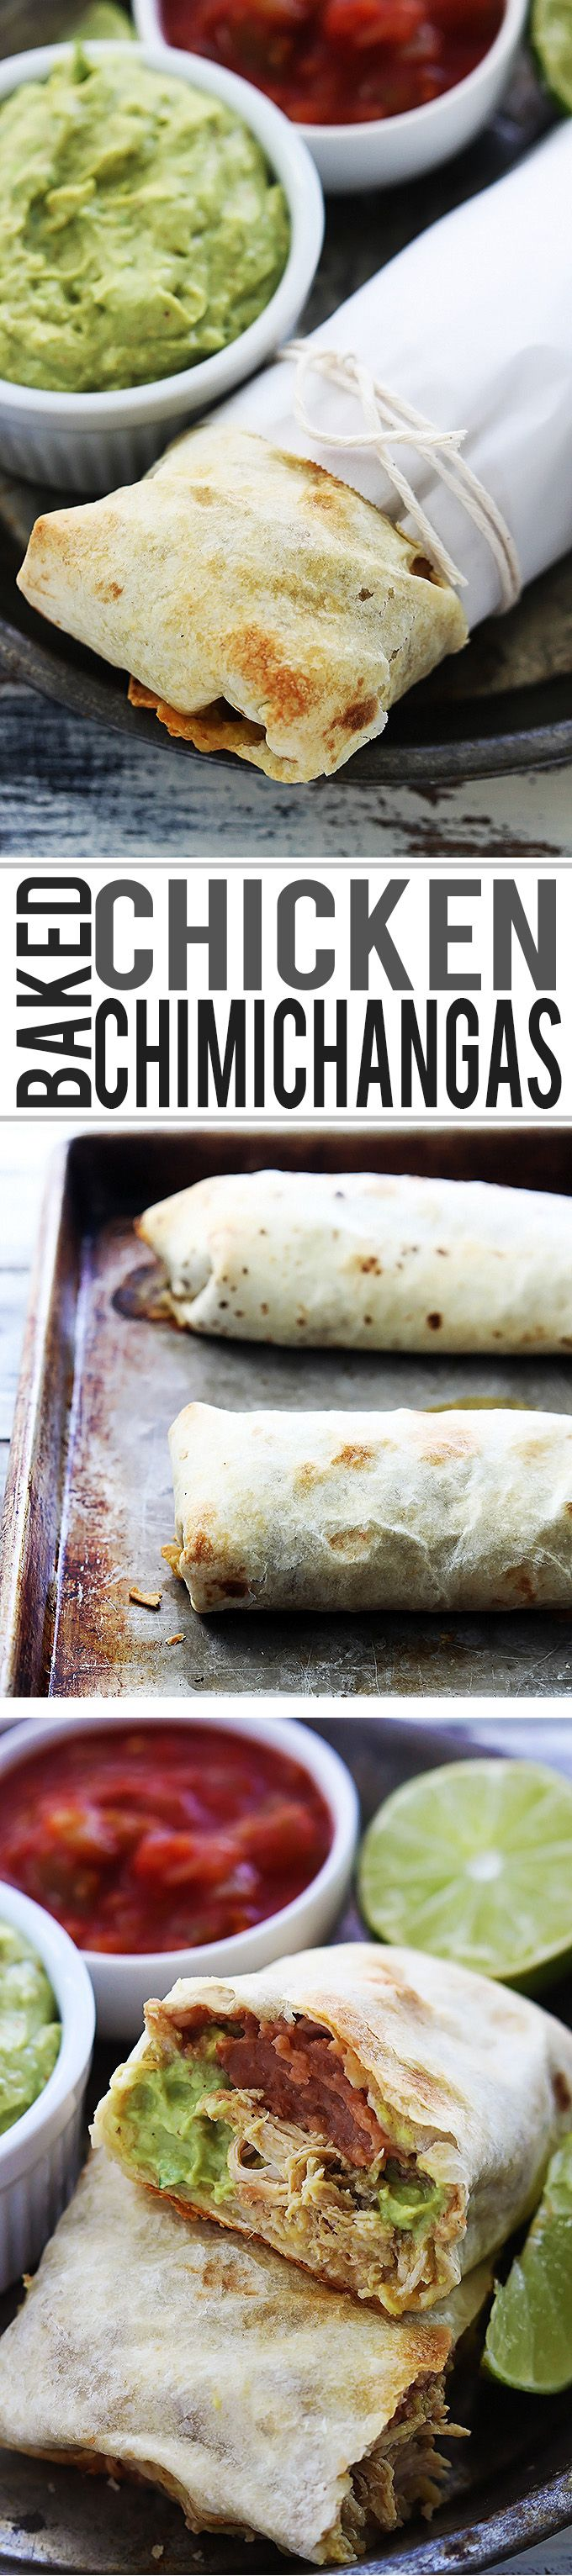 Crispy, healthy baked (not fried!) chicken chimichangas